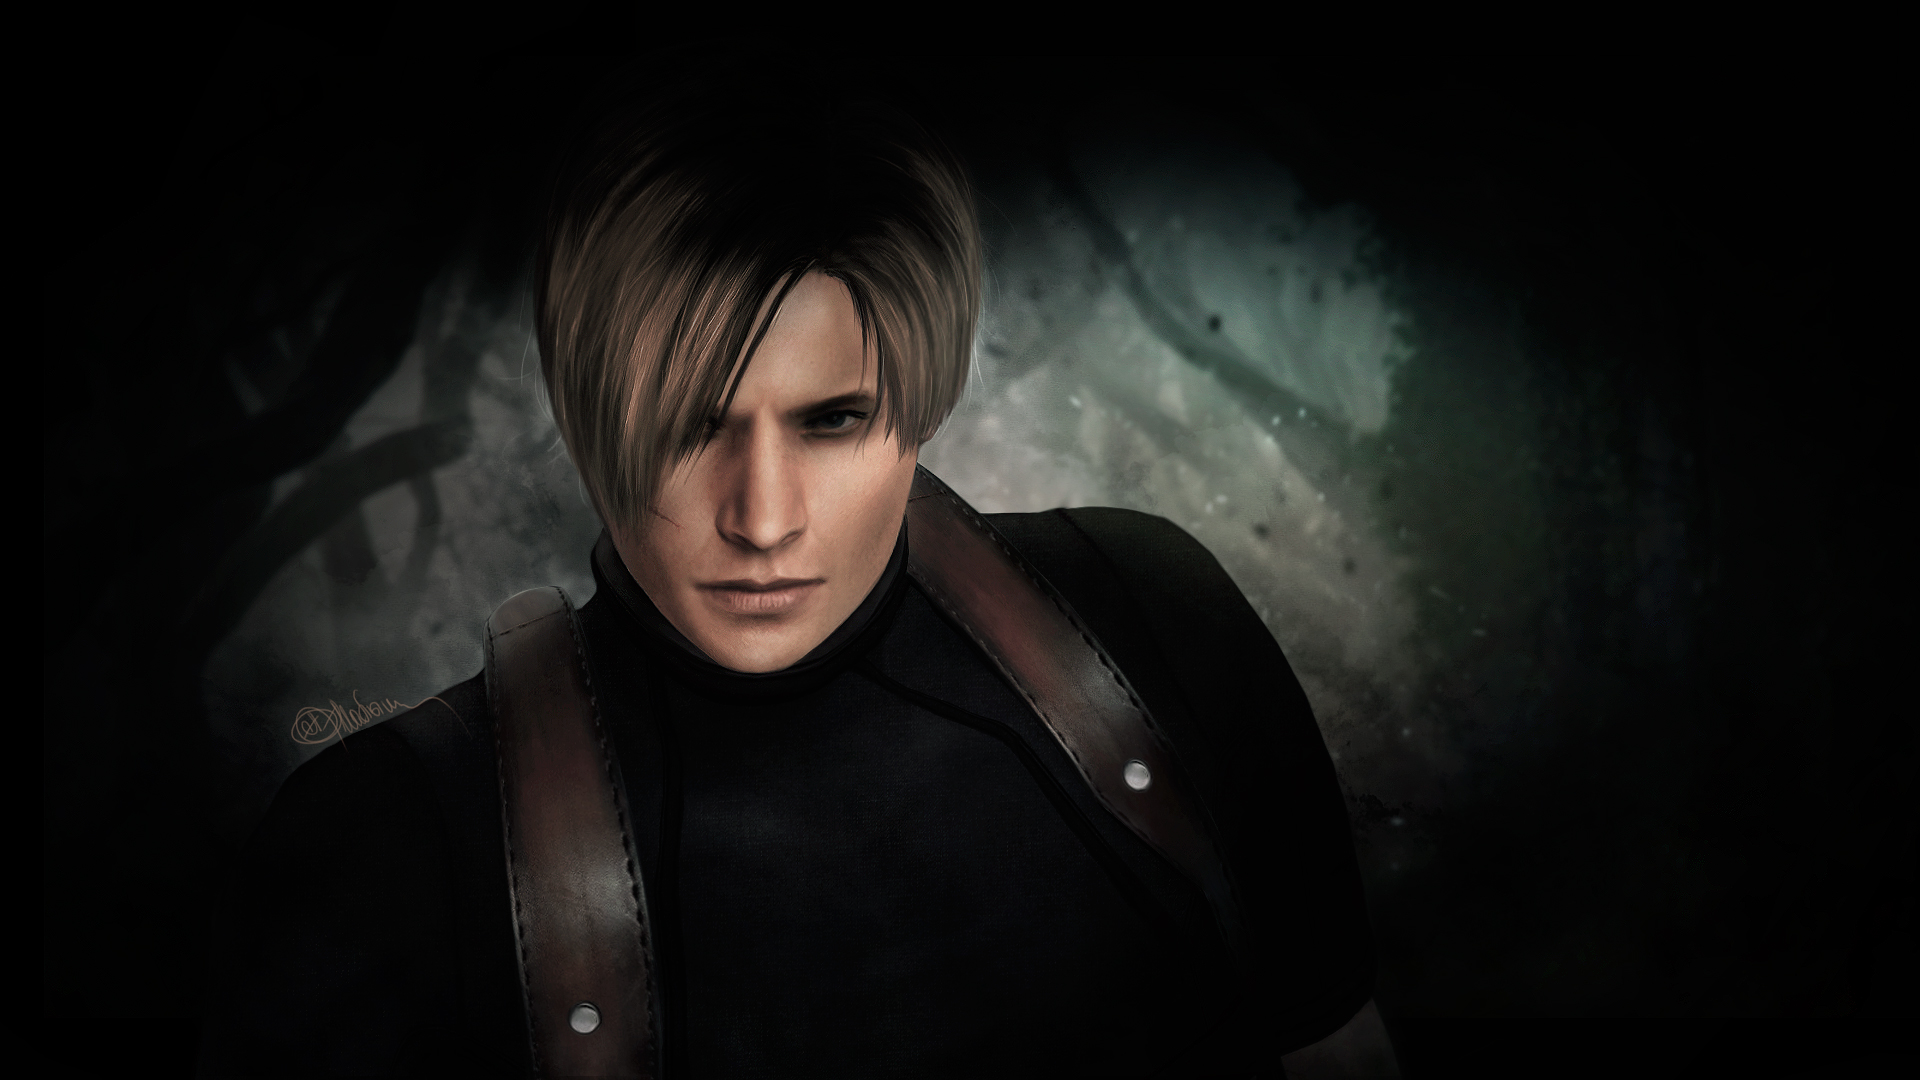 Resident Evil 4 Photorealistic Leon Kennedy By Push Pulse On